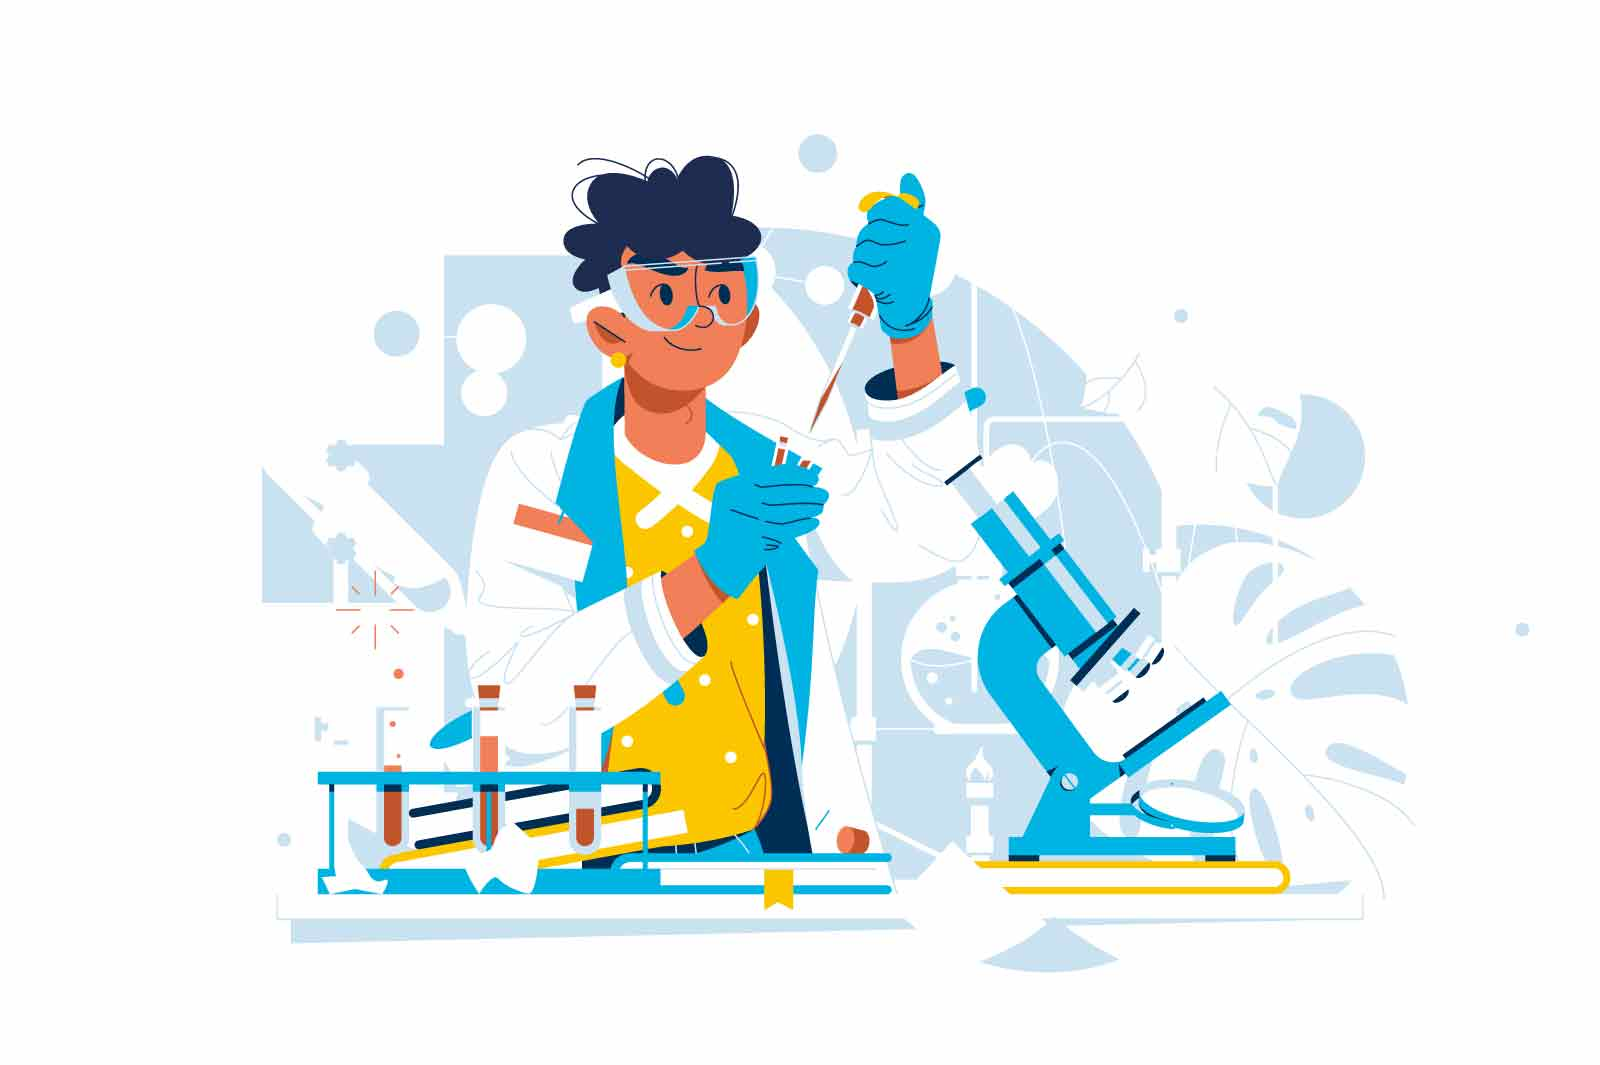 Laboratory worker examine test material vector illustration. Blood toxicity testing flat style. Science, investigation, toxicology concept